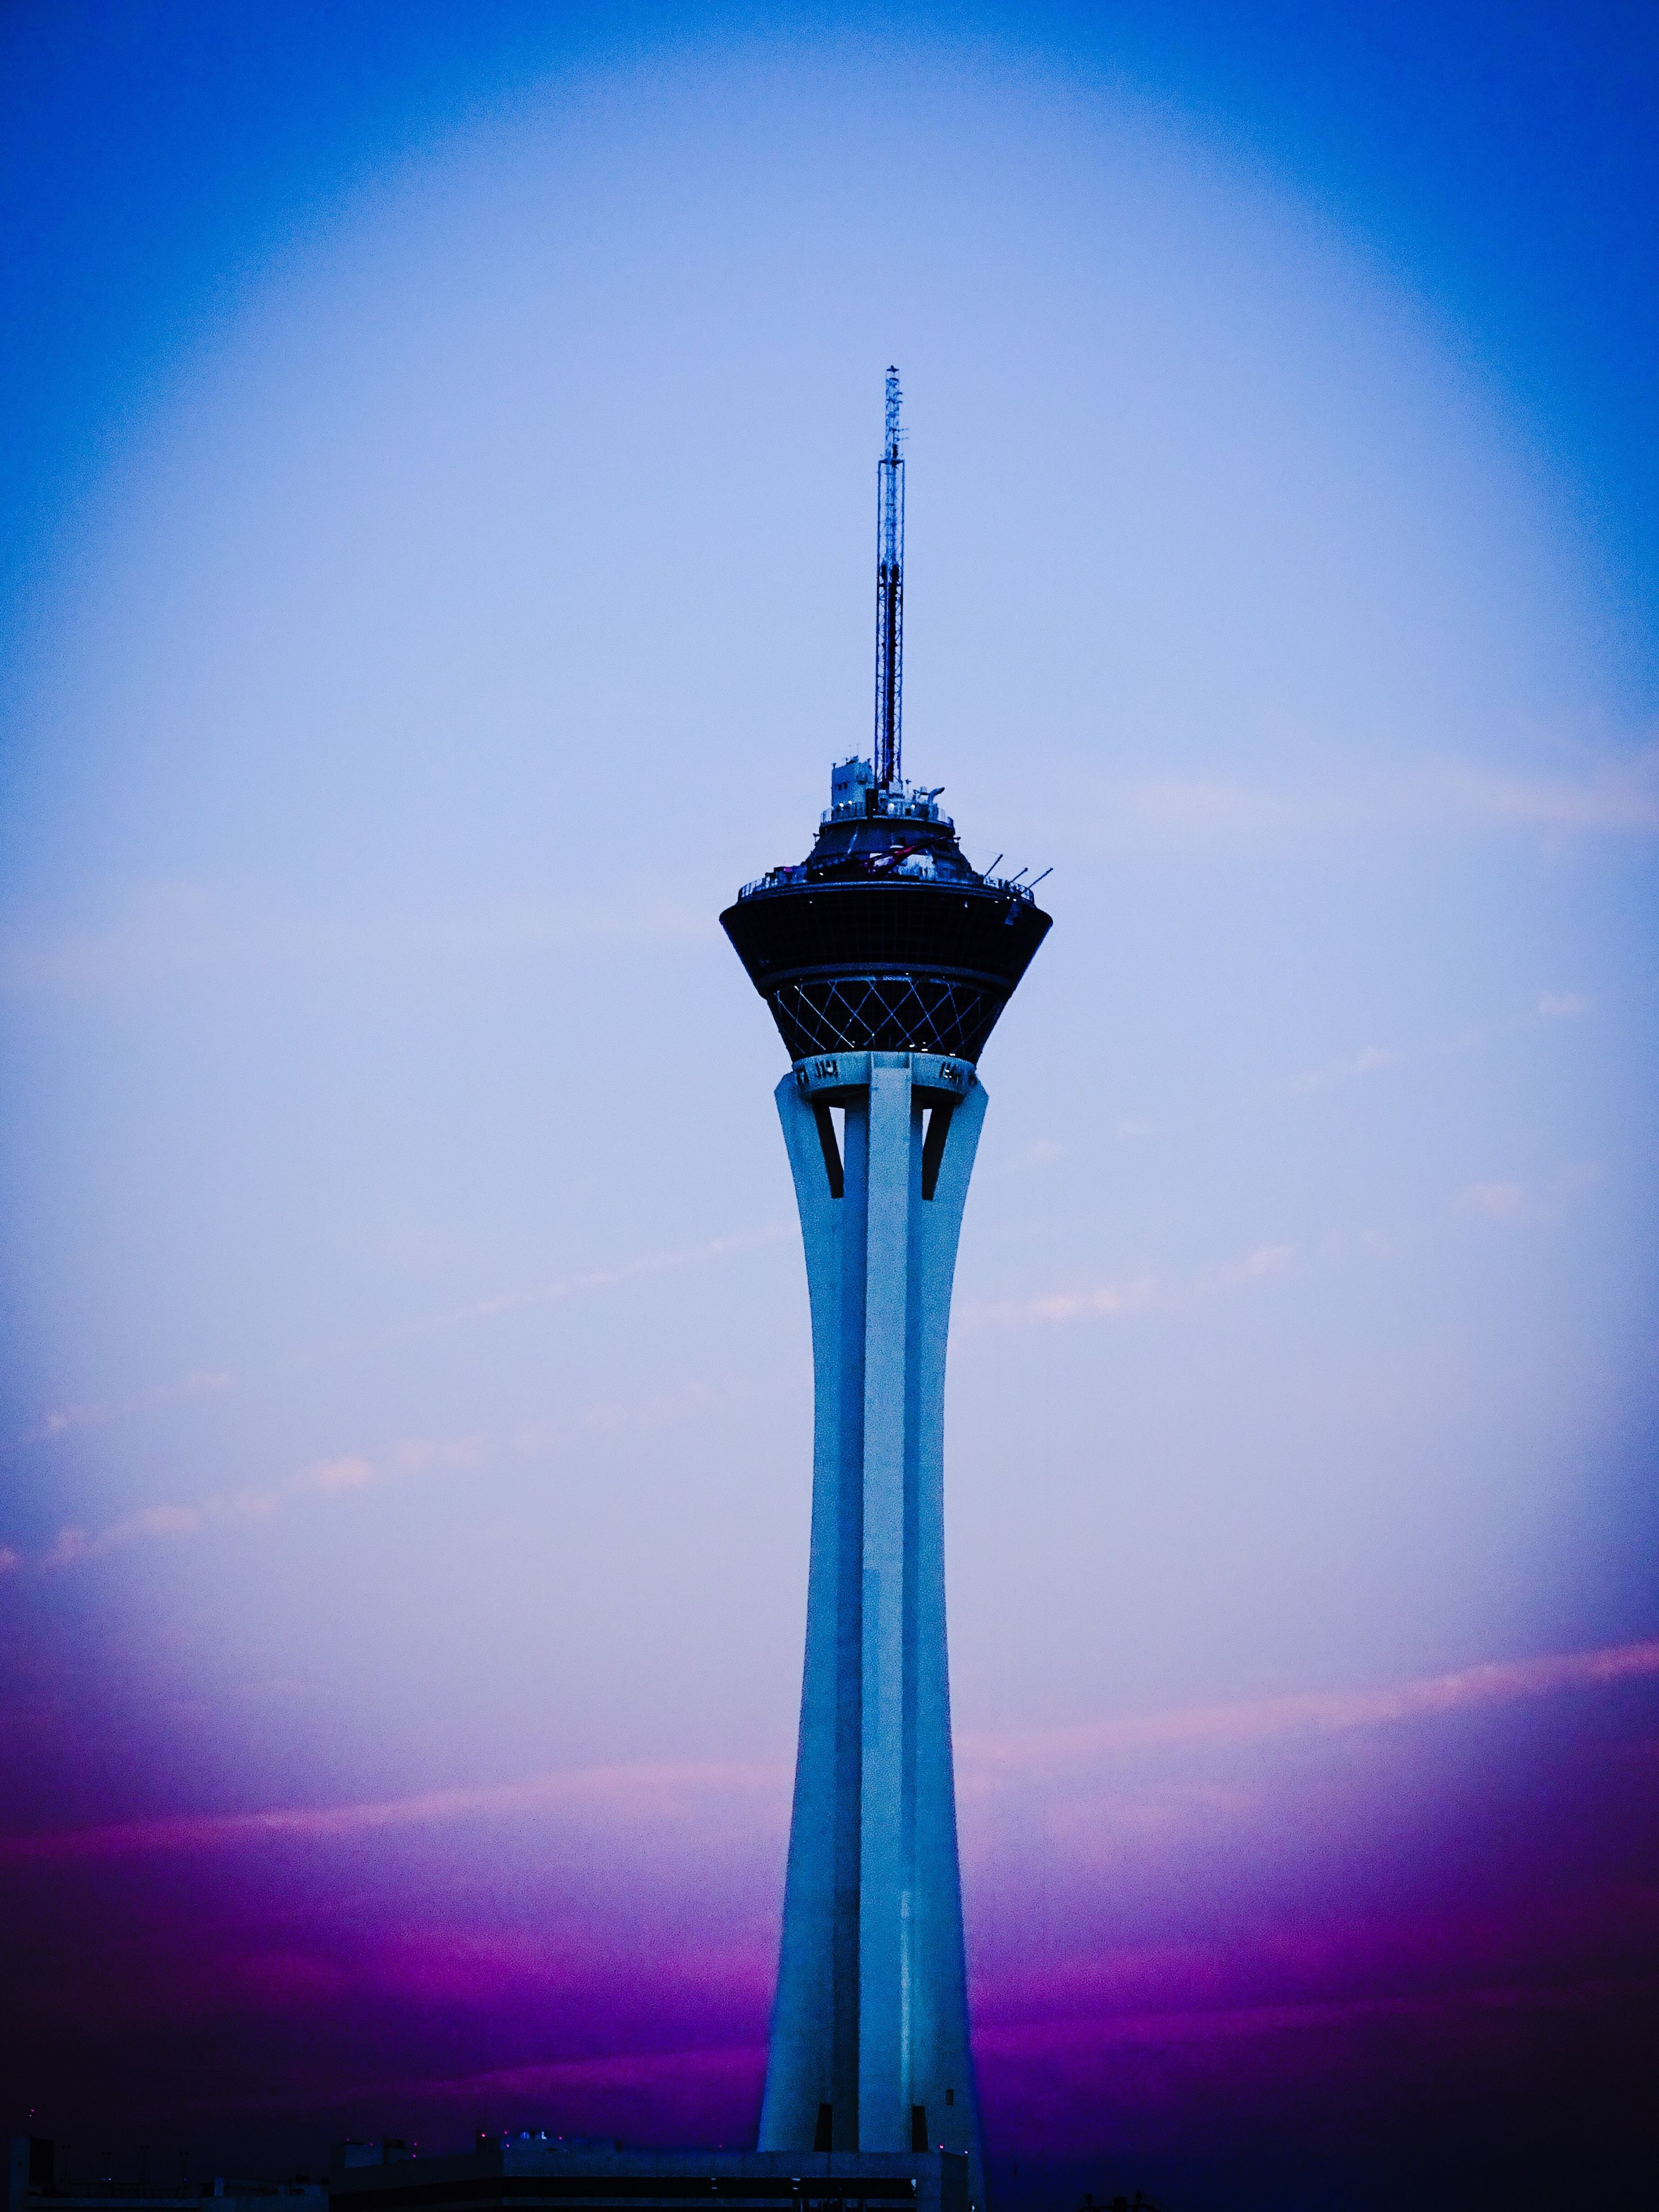 blue, low angle view, clear sky, built structure, copy space, dusk, illuminated, architecture, sky, tower, travel, no people, outdoors, tall - high, travel destinations, lighting equipment, metal, red, connection, night